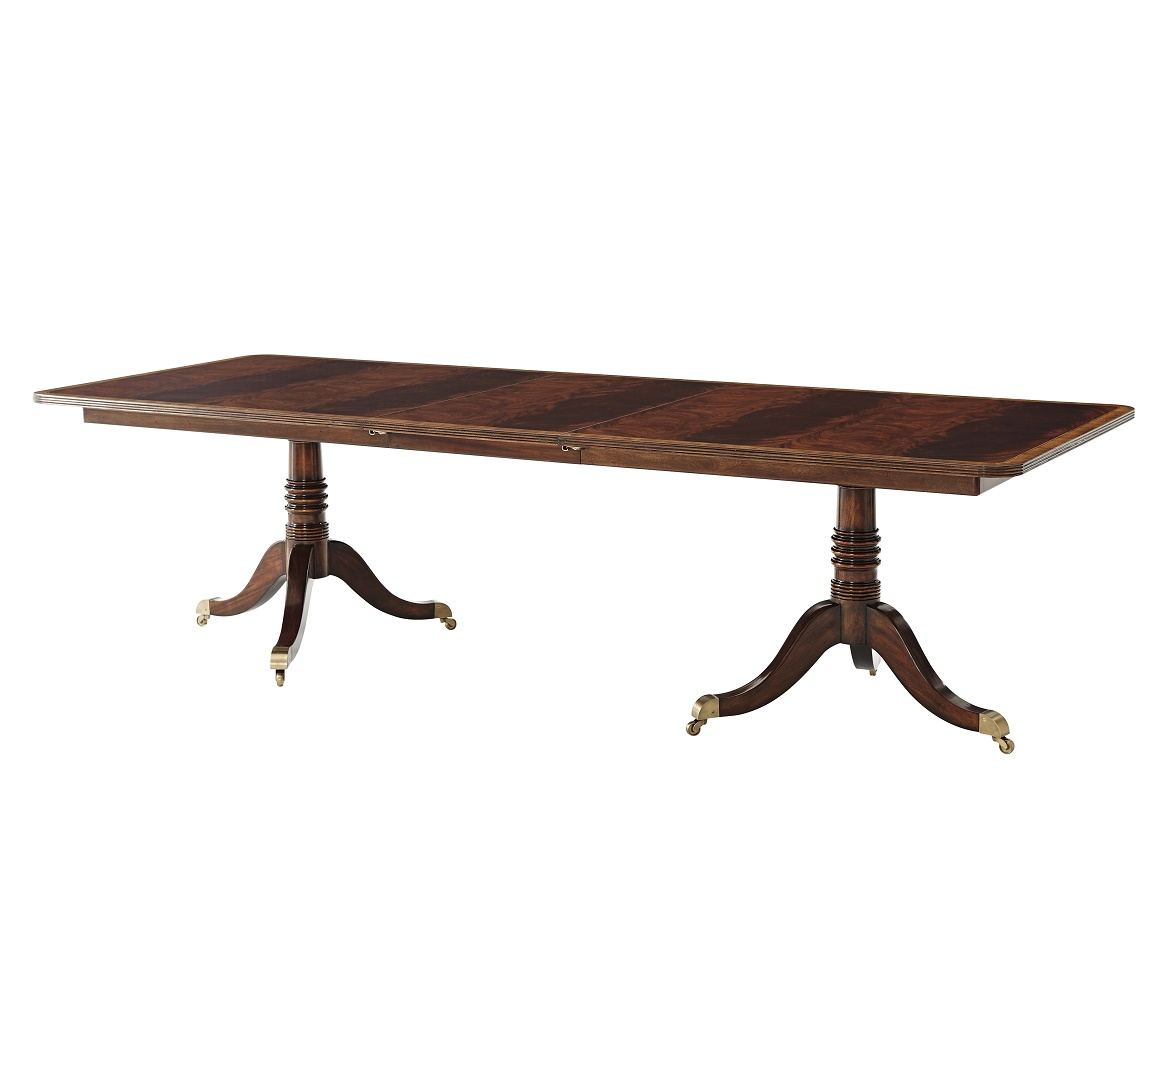 Penreath Dining Table, Theodore Alexander Dining Table, Brooklyn, New York, Furniture by ABD